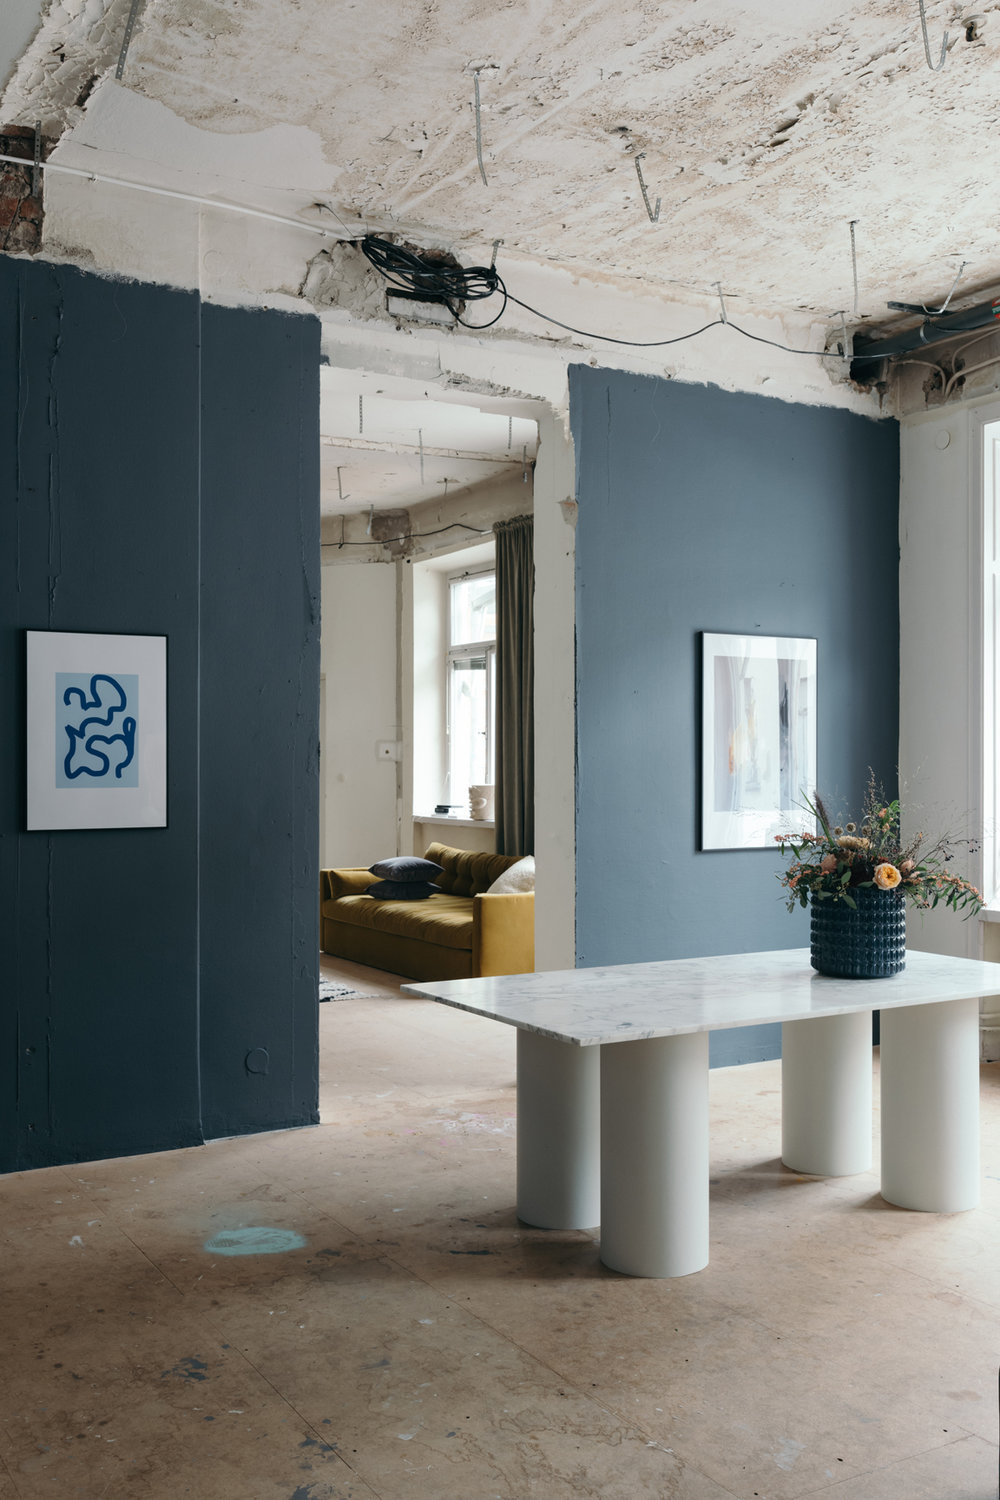 Exhibition 'Colorful Studio' for Wall of Art.  Concept and Interior Design. Photo by Jesper Florbrant.